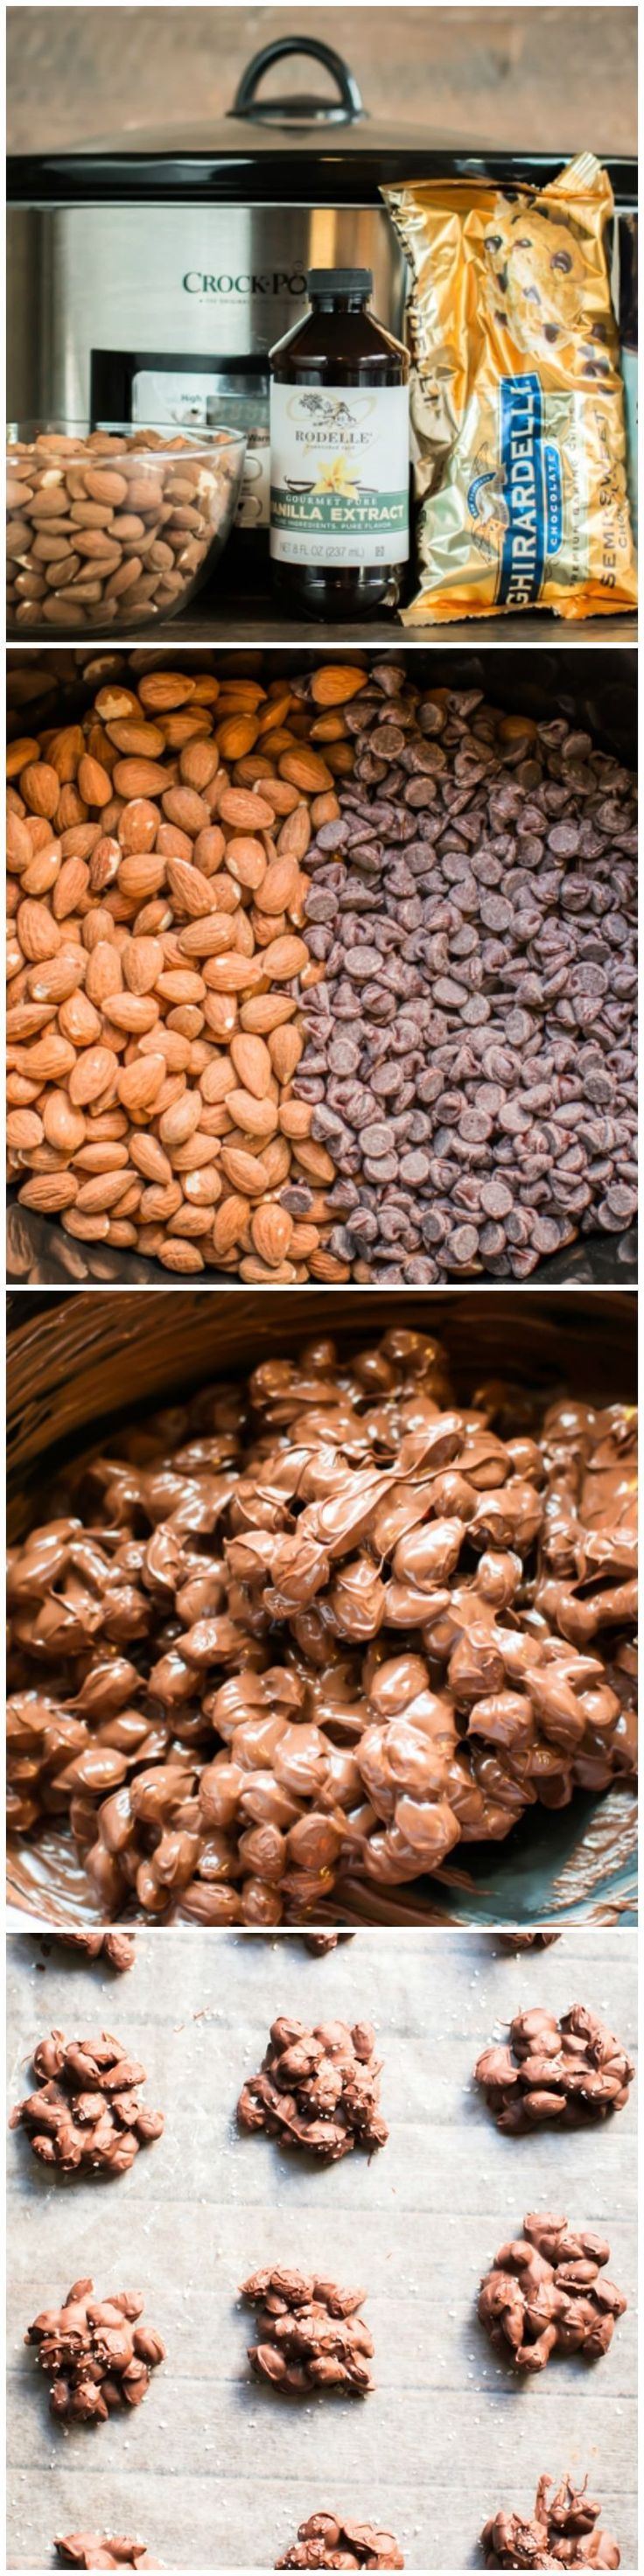 Slow Cooker Sea Salt Chocolate Almond Clusters. So pretty on the Christmas cookie trays!